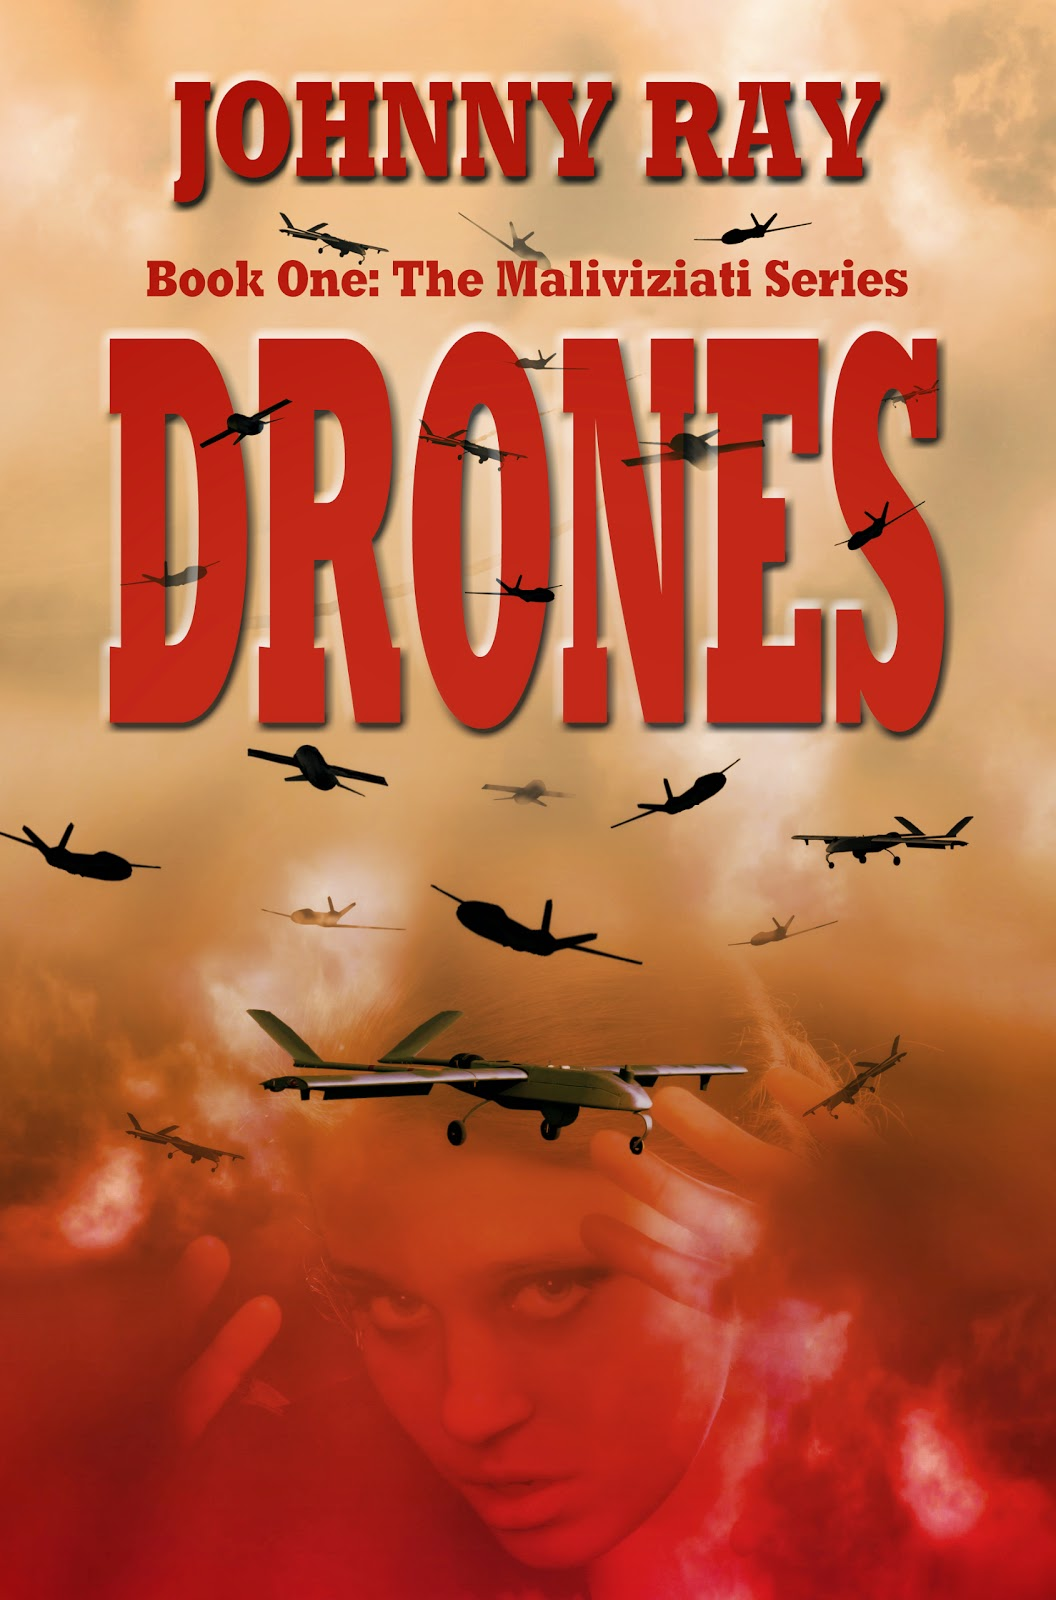 www.amazon.com/Drones-International-Romantic-Thriller-Maliviziati-ebook/dp/B00GR4F8NW